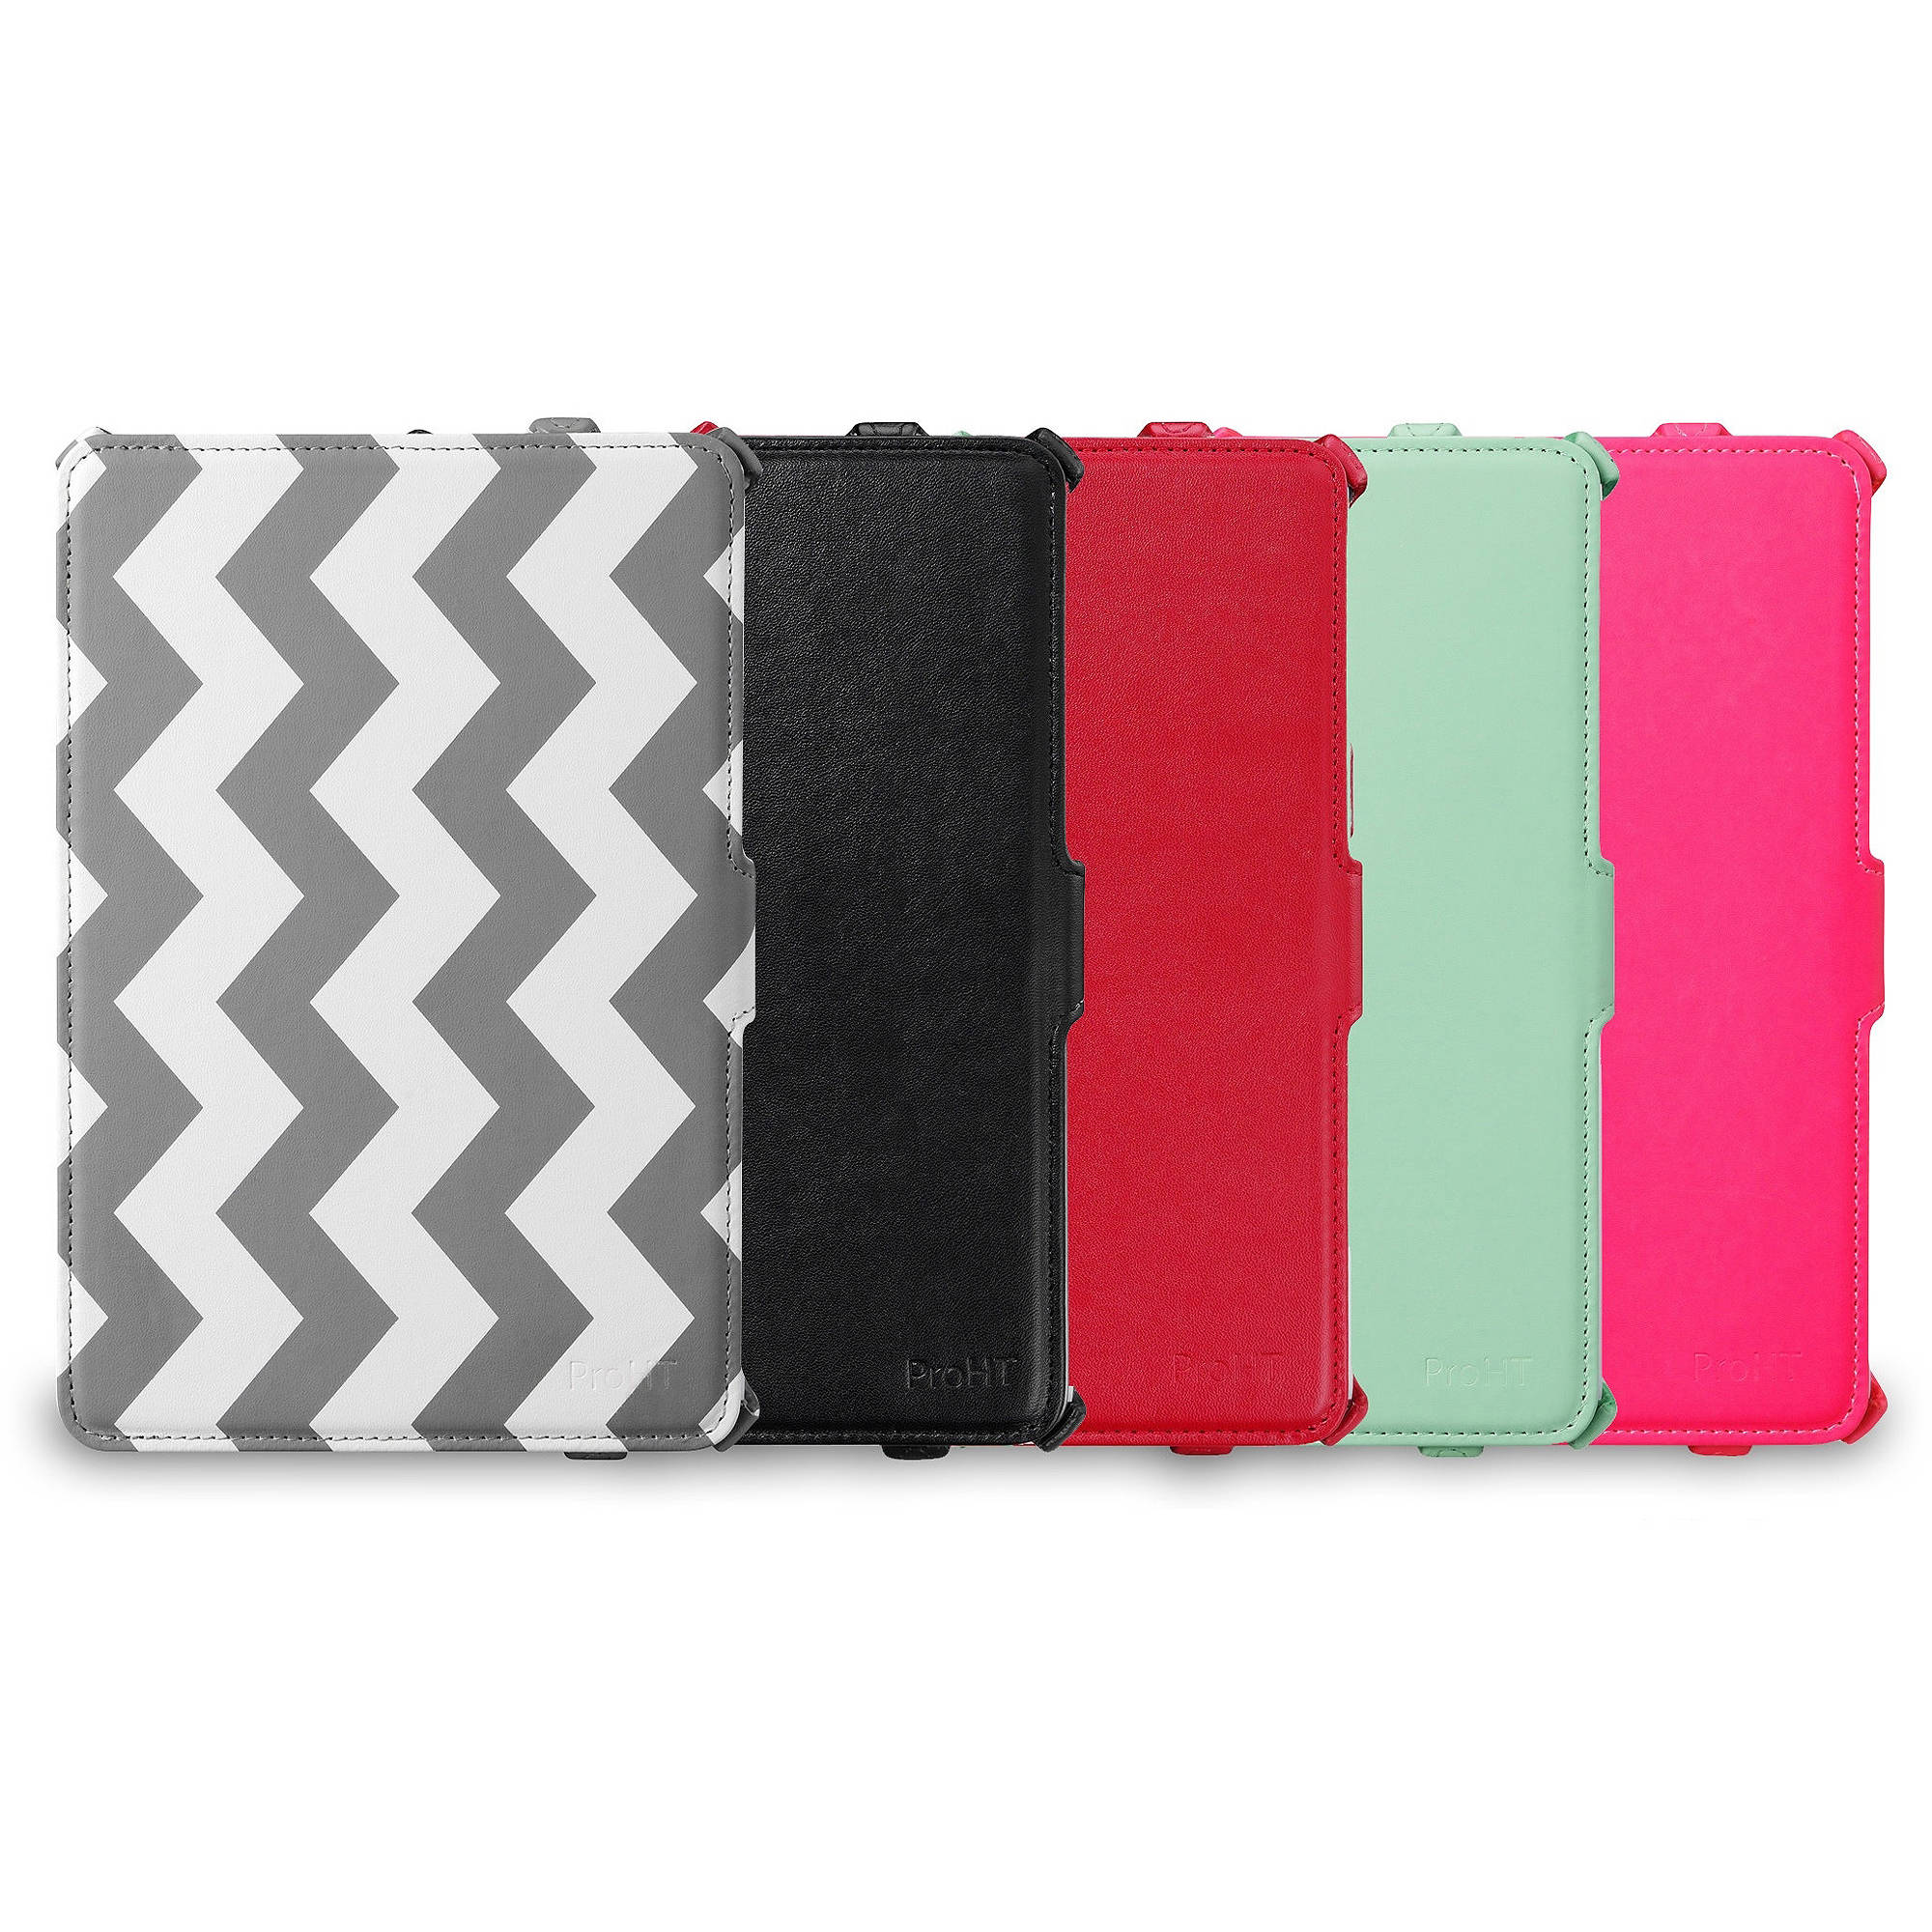 GRIPS IPAD MINI LEATHER CASE FOR IPAD MINI IN BLACK EASY USE ANTI-DUST ANTI-SCRA